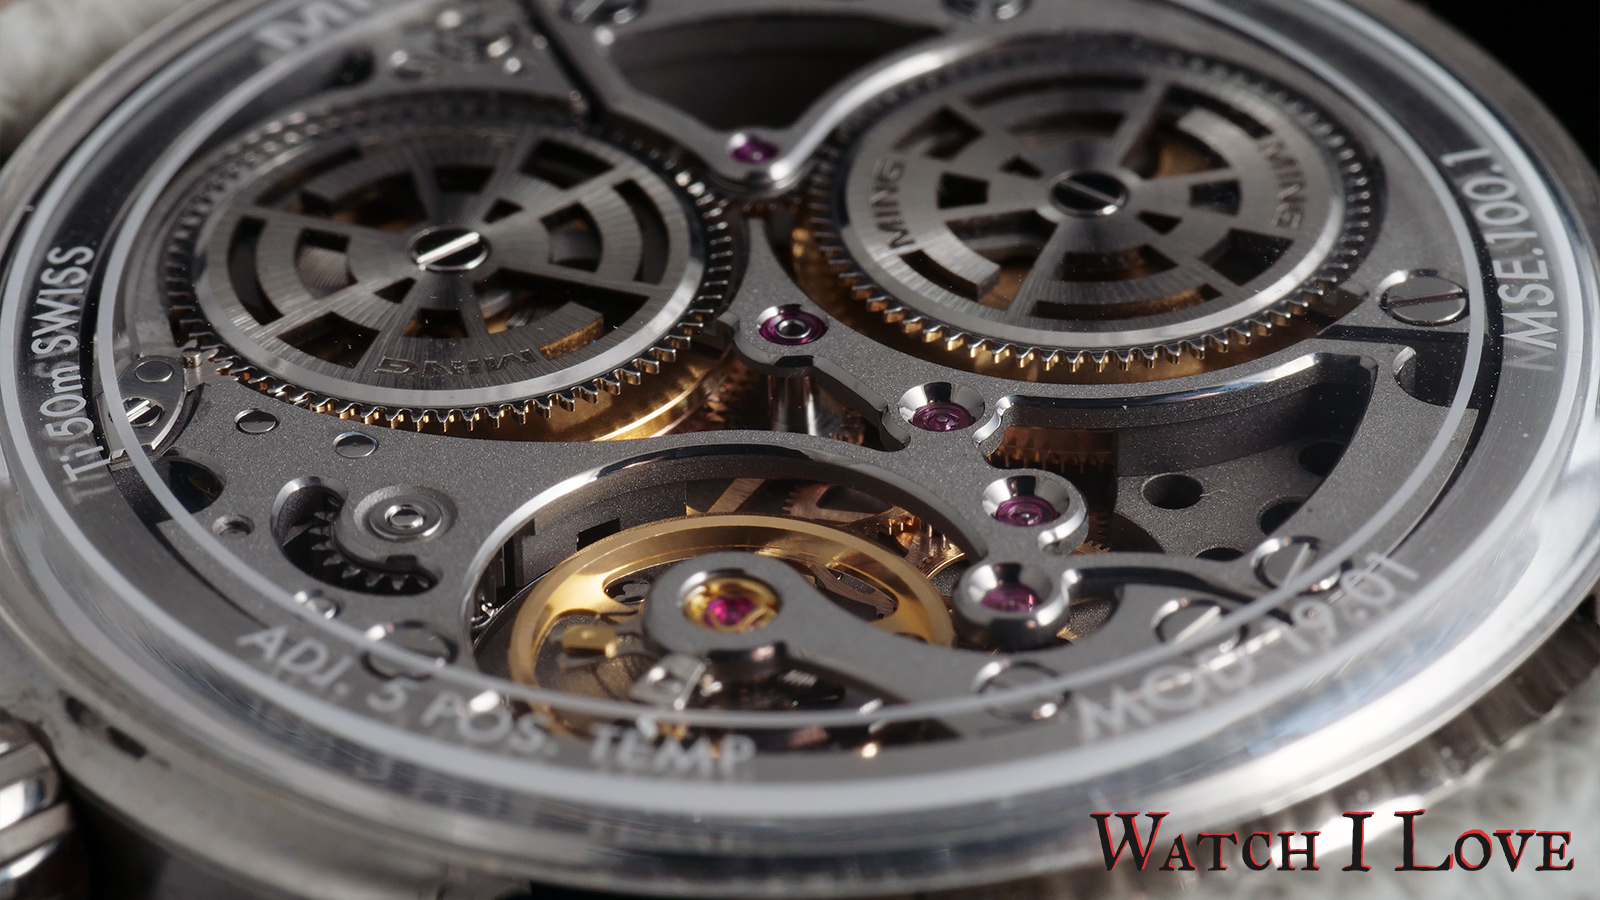 The Ming 19.01 movement MSE100.1